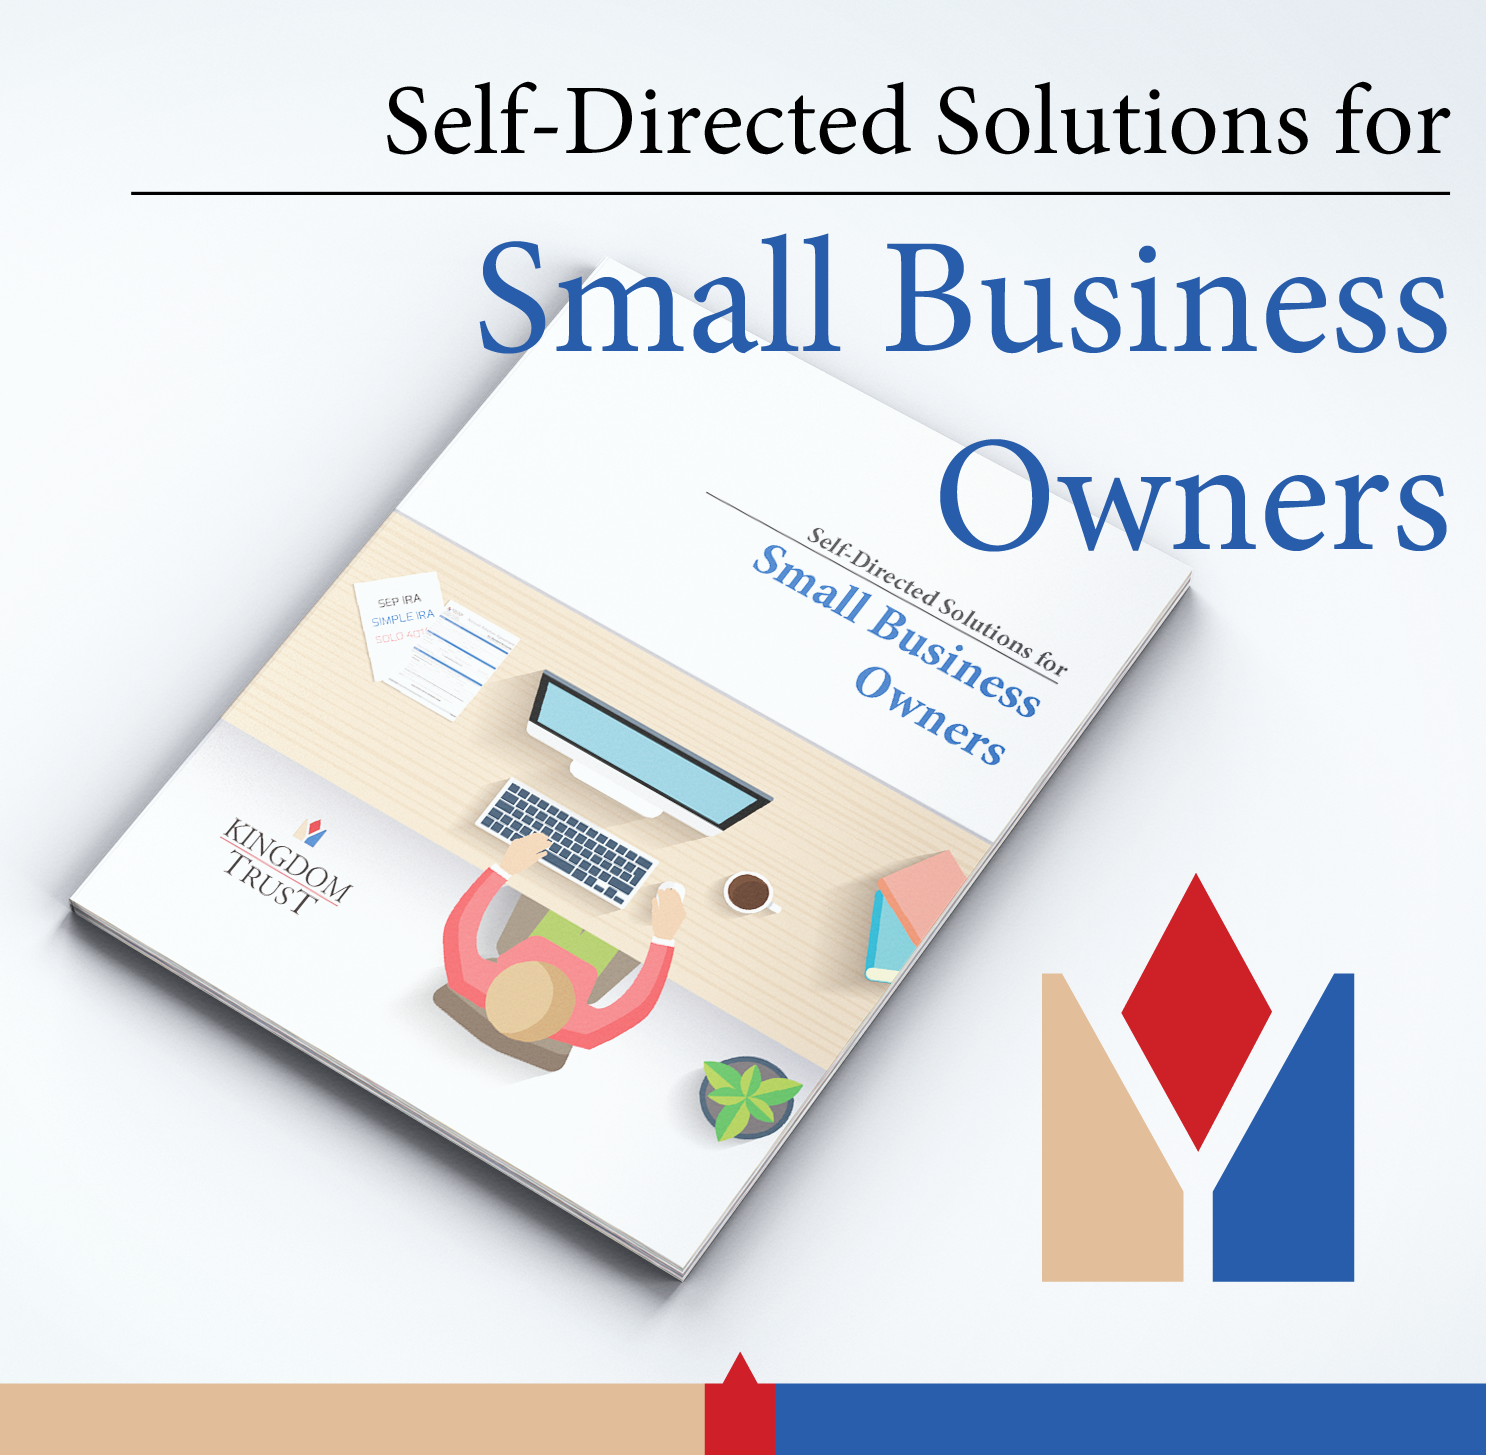 Self-Directed Solutions for Small Business Owners   Kingdom Trust eBook